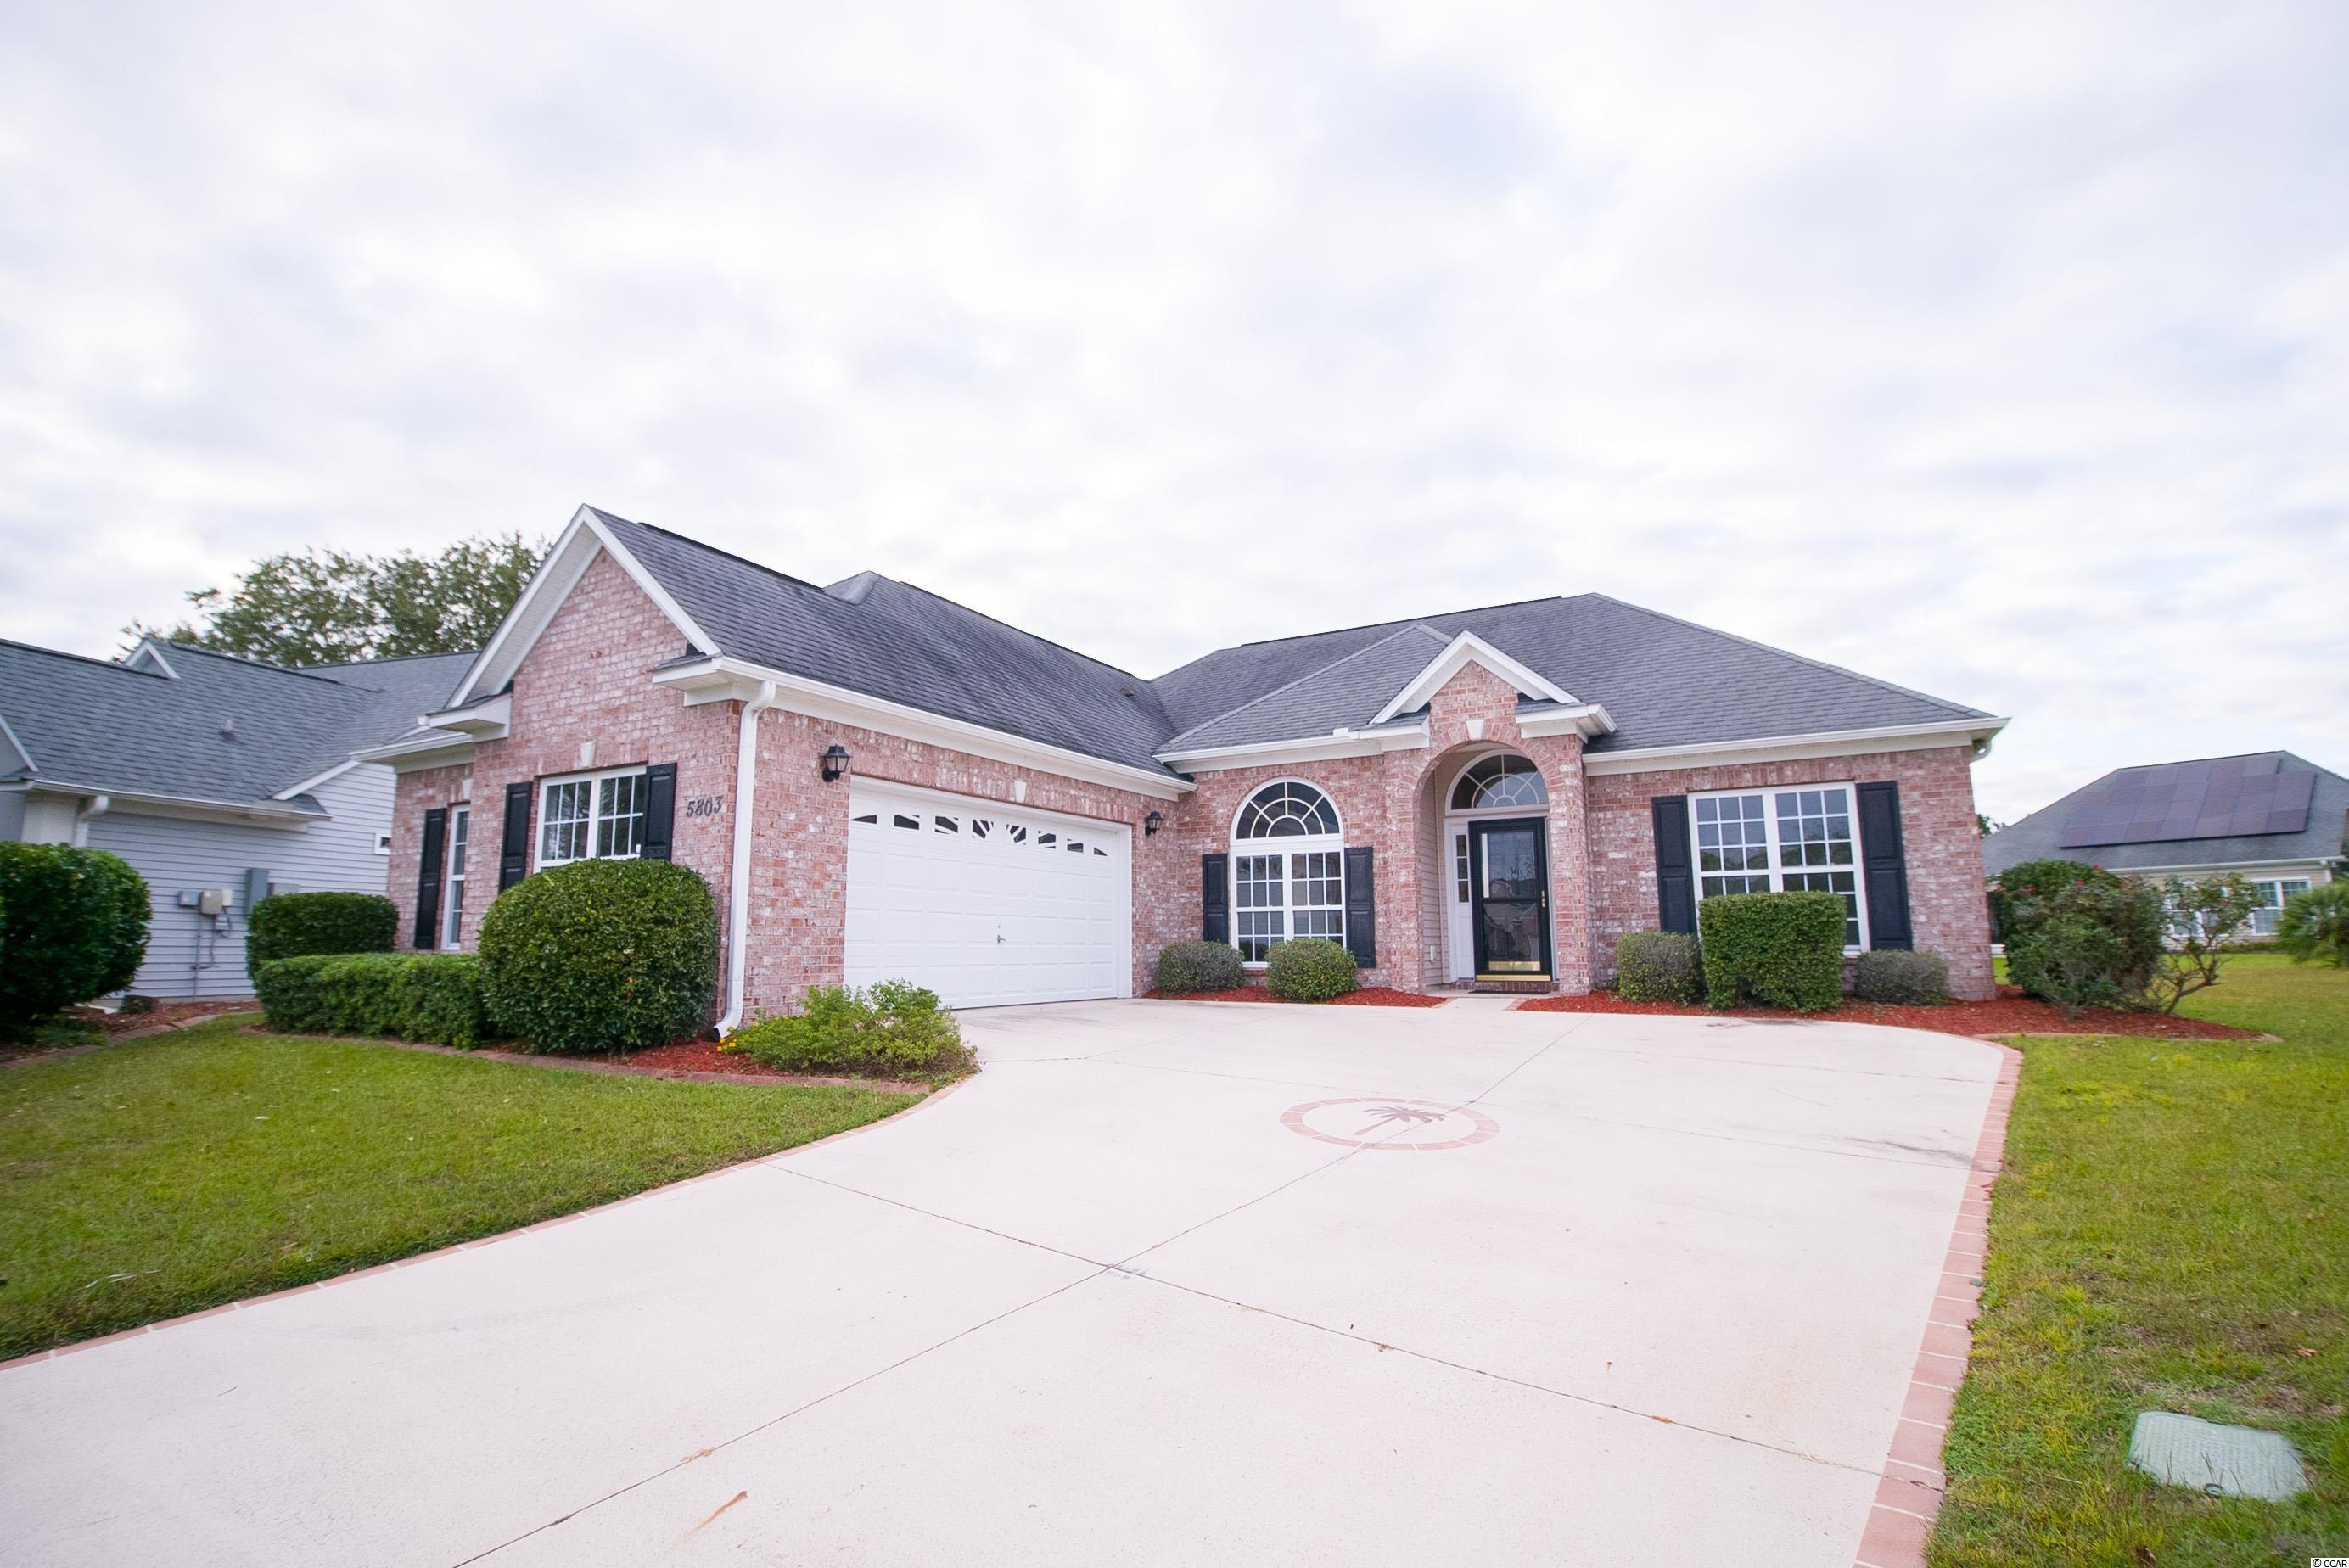 """Bridle Ridge 3 BR/2 BA home in Barefoot.  Home is being sold """"As Is"""".  Home is on cul-de-sac and on a lake.  Barefoot residents have access to many amenities including seasonal shuttle service, multiple pools, restaurants, ocean front access and more!"""